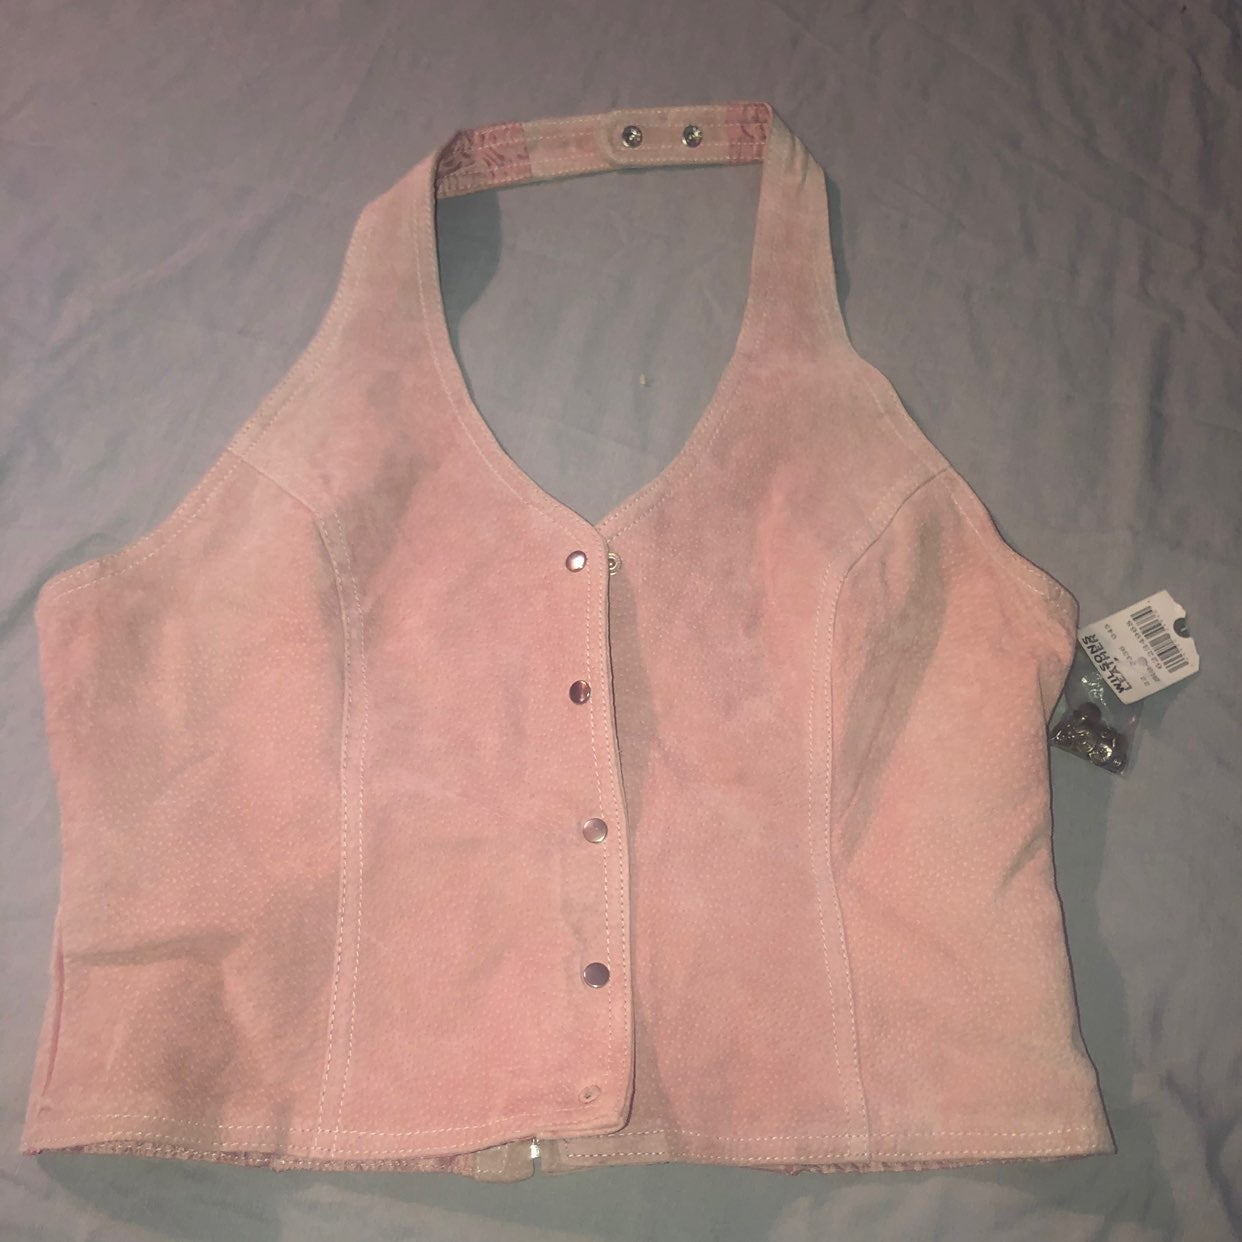 WILSON LEATHERS pink suede vest shirt